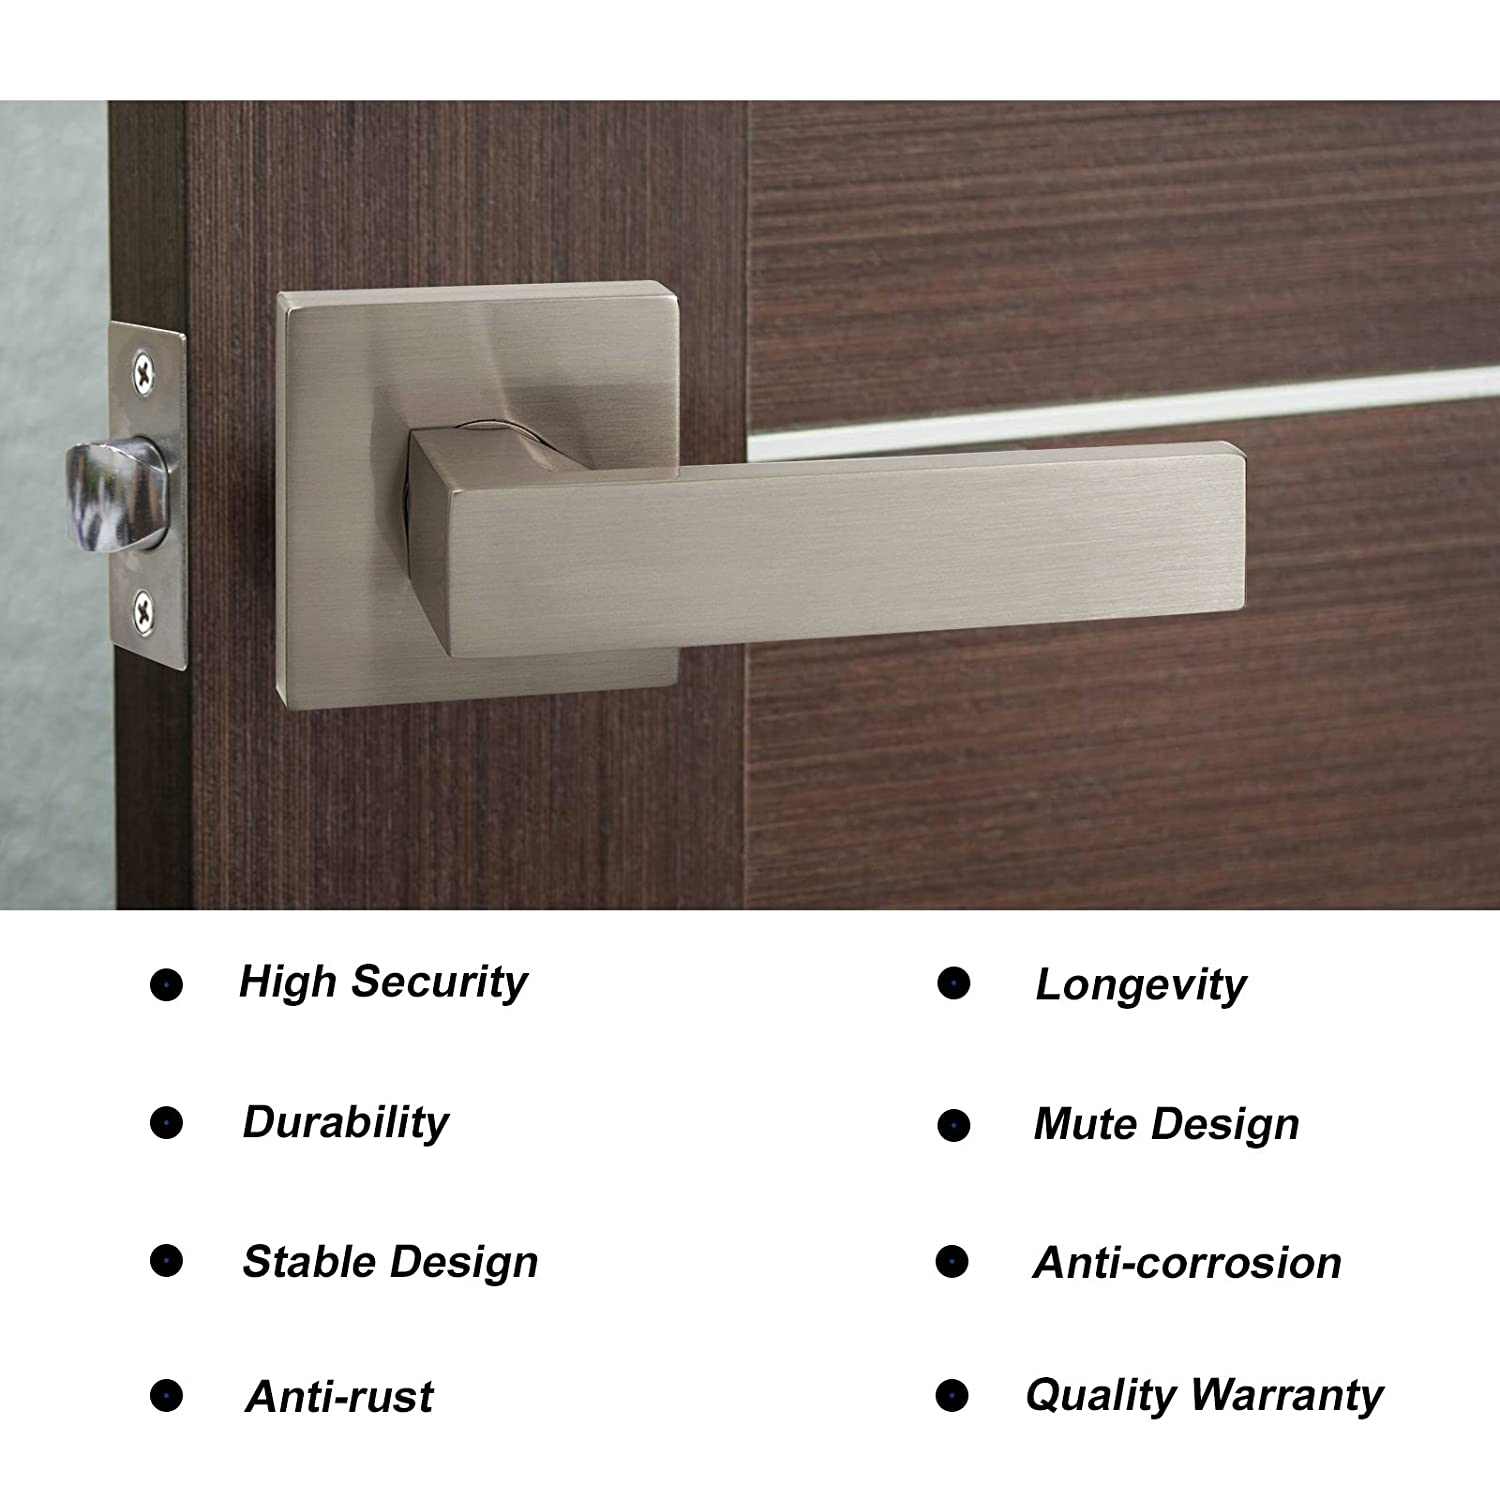 Front Door Locks with Keys 2 Pack Heavy Duty Exterior Door Locking with Square Rosette for Commercial//Residencial Use Straight Drop Style Door Handles Satin Nickel Finish